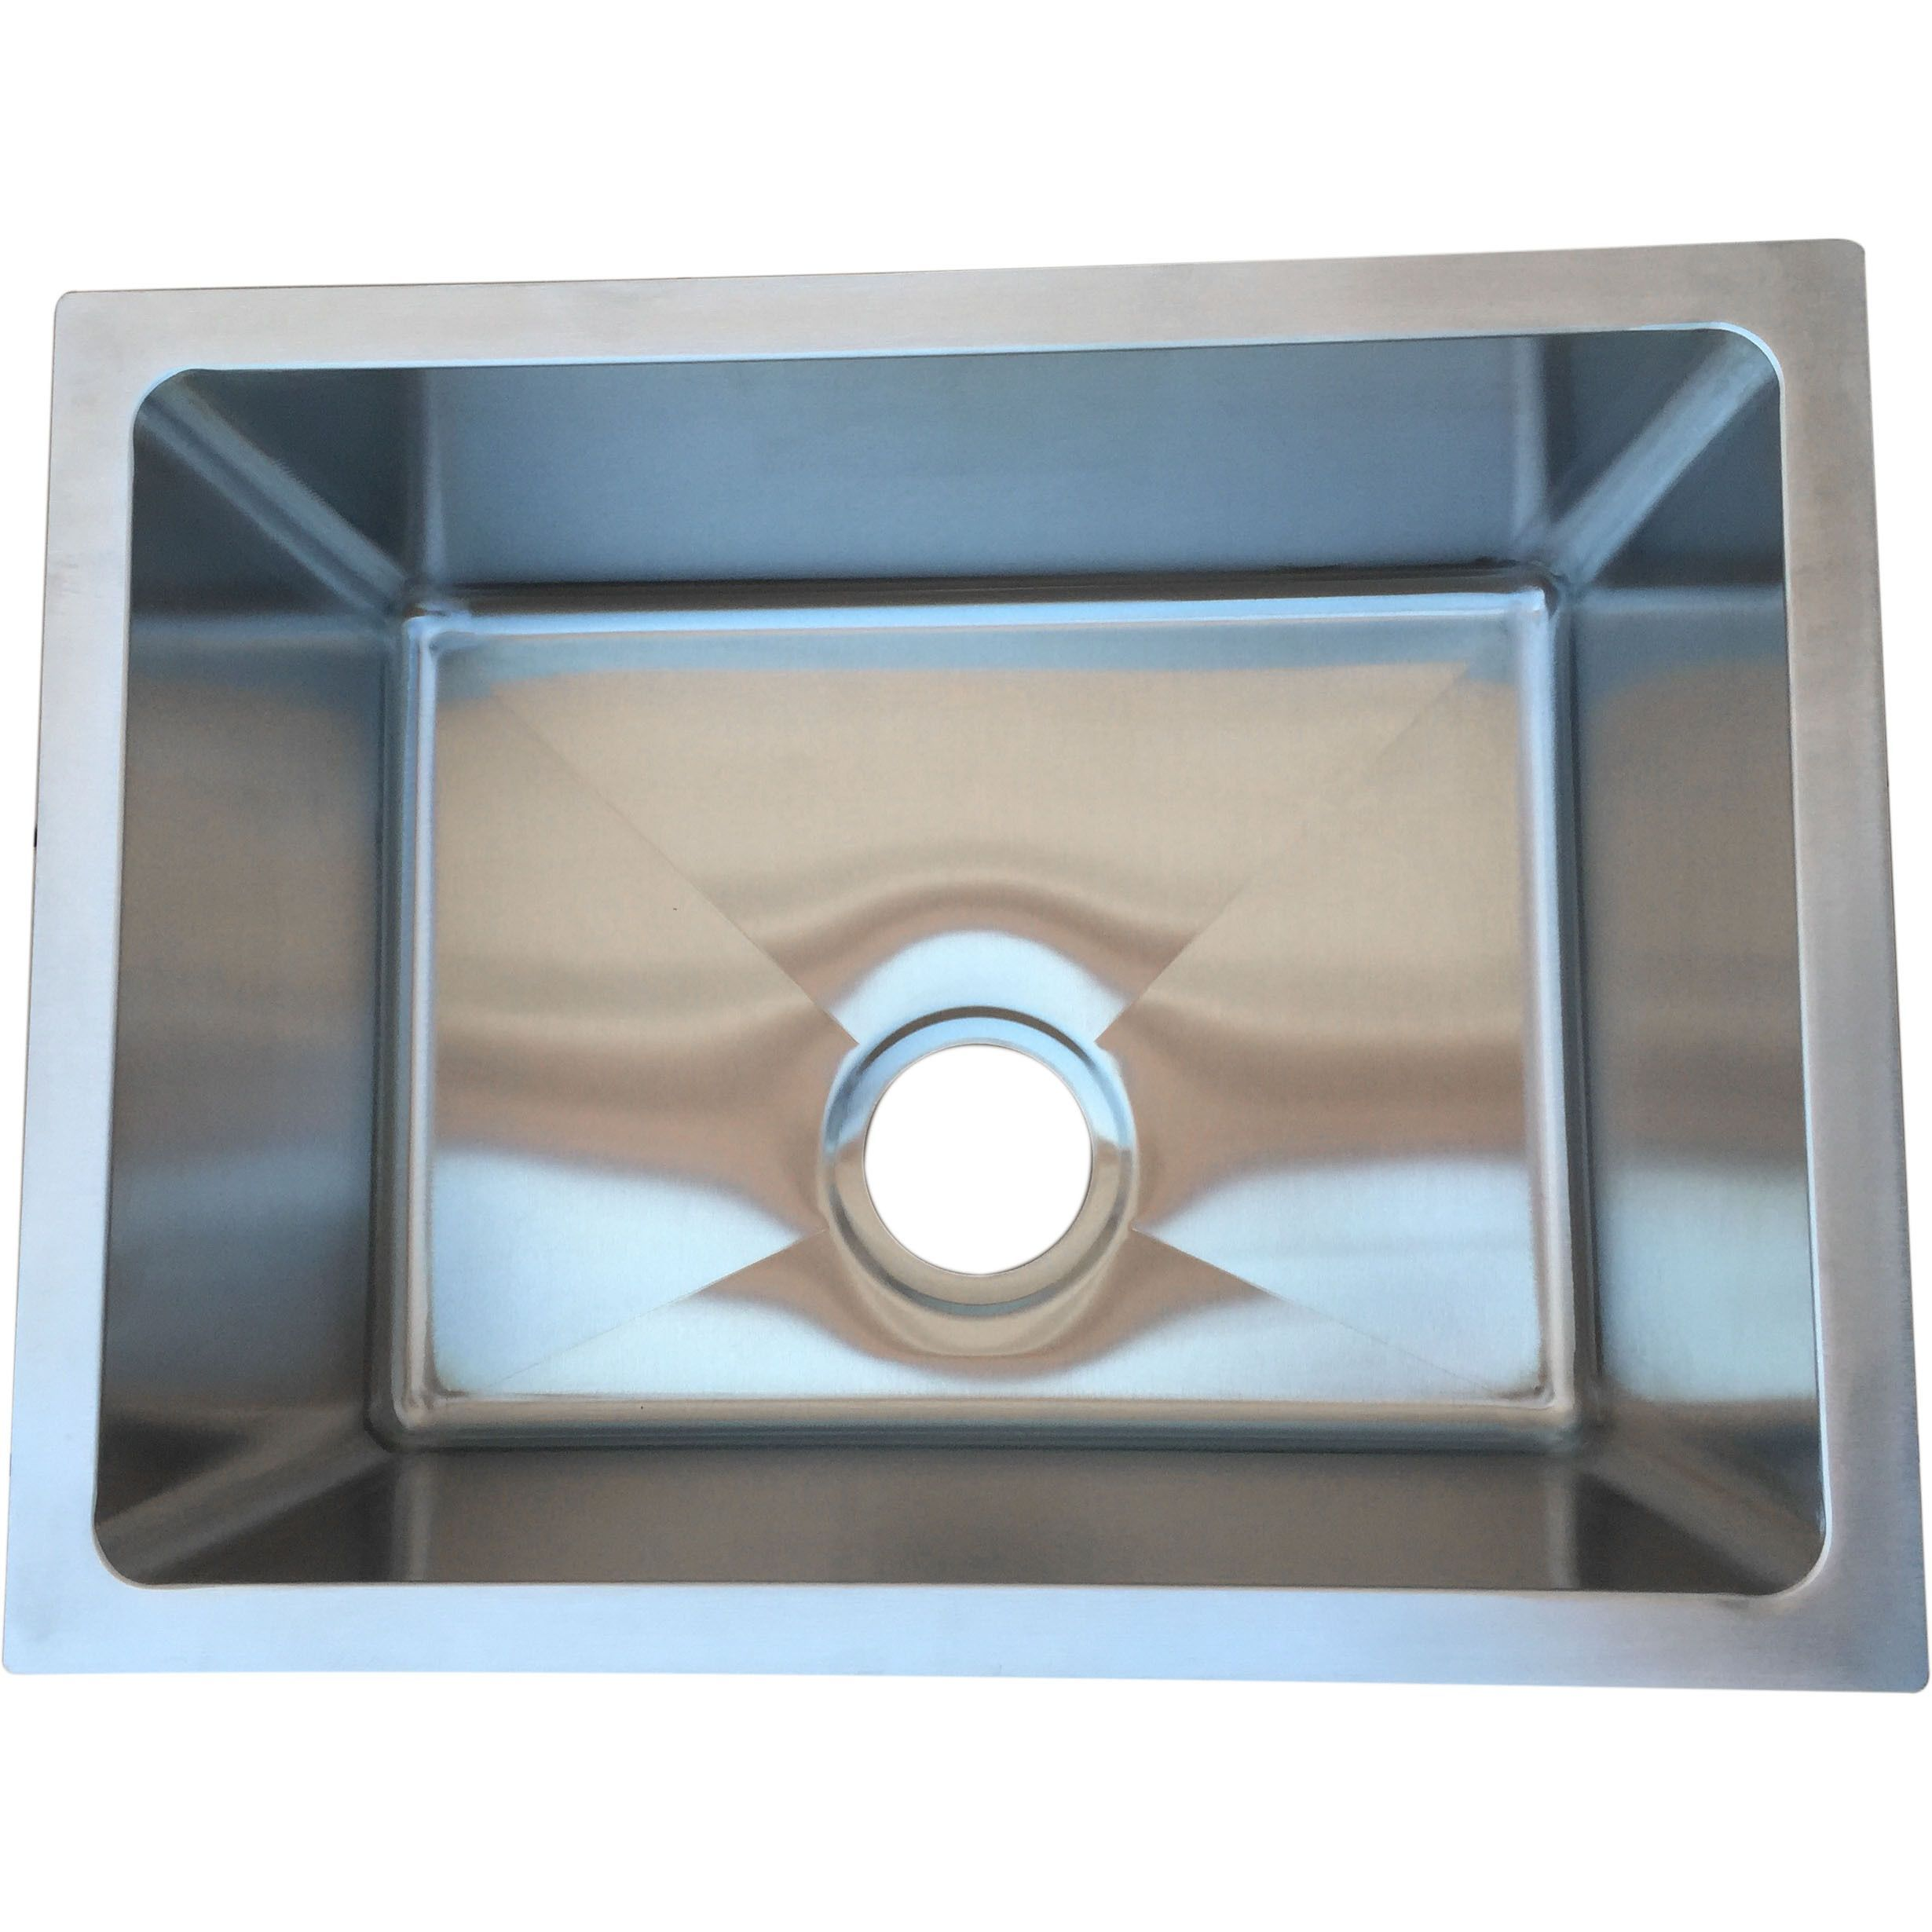 Starstar 21 X 16 Undermount 16 Gauge 304 Stainless Steel Kitchen ...